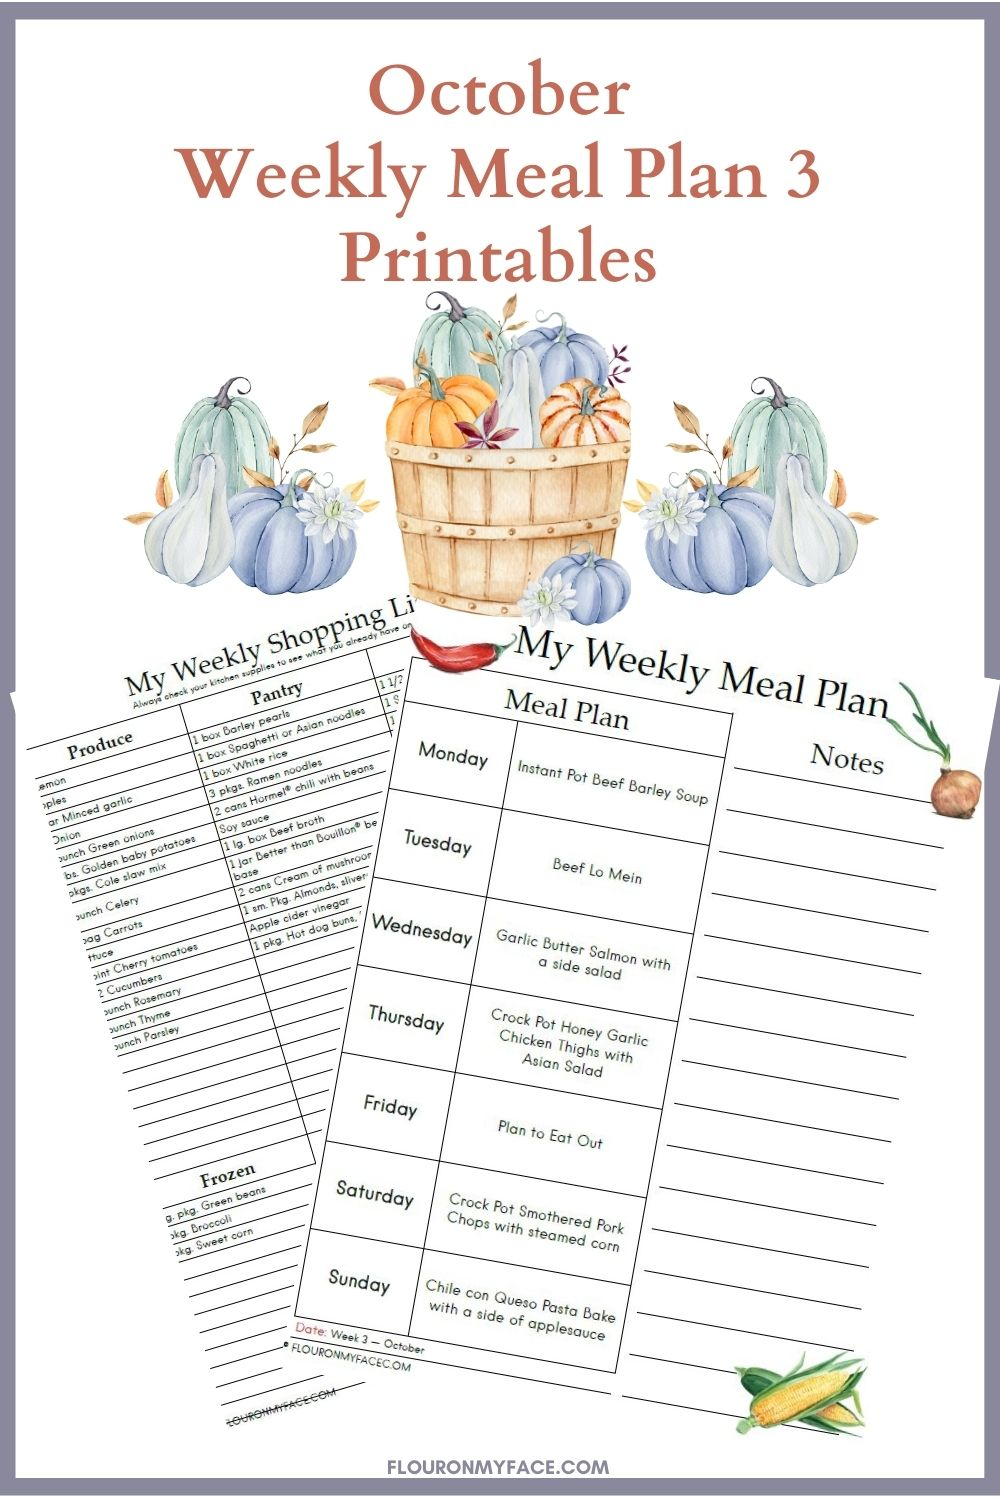 October Weekly Meal Plan 3 Printables preview